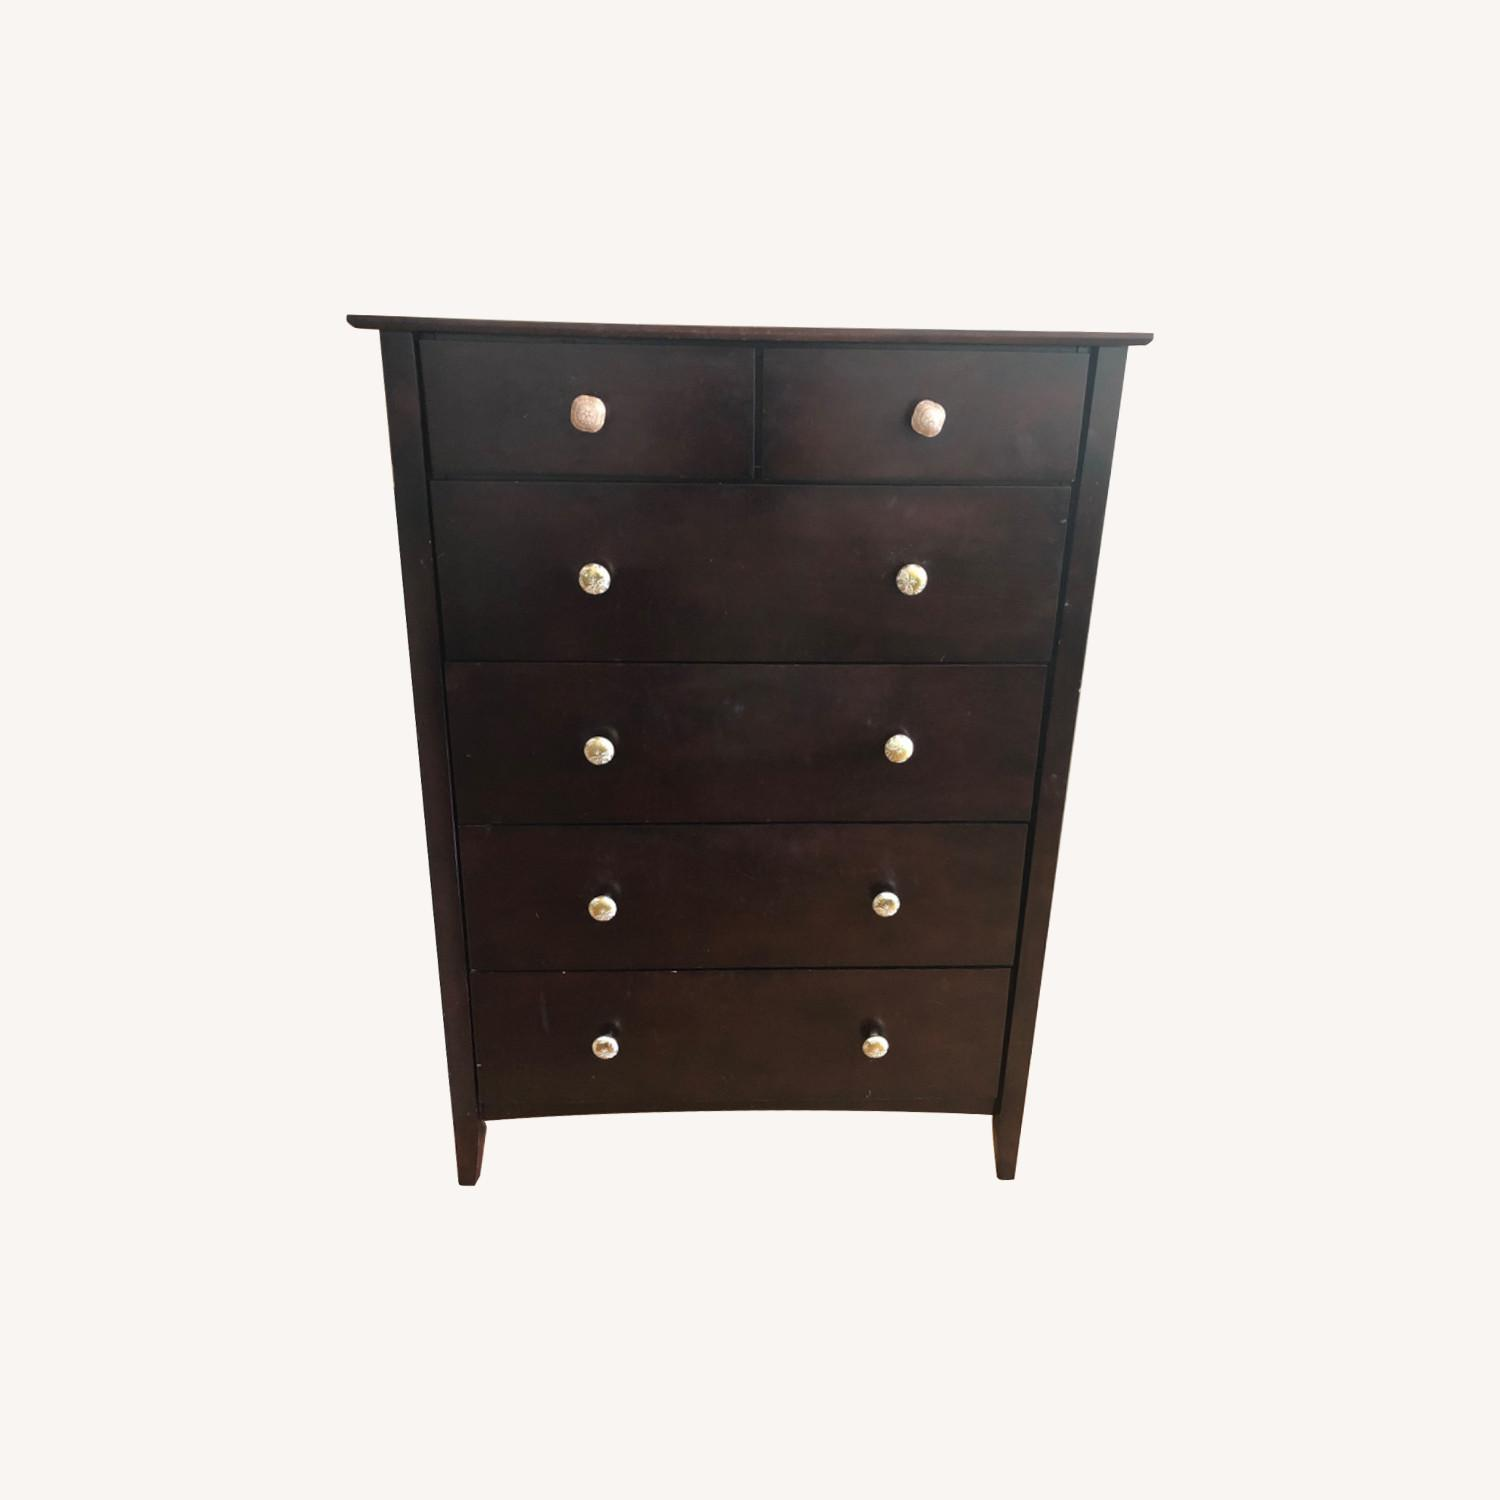 Wood Dresser with Anthropologie Knobs - image-0